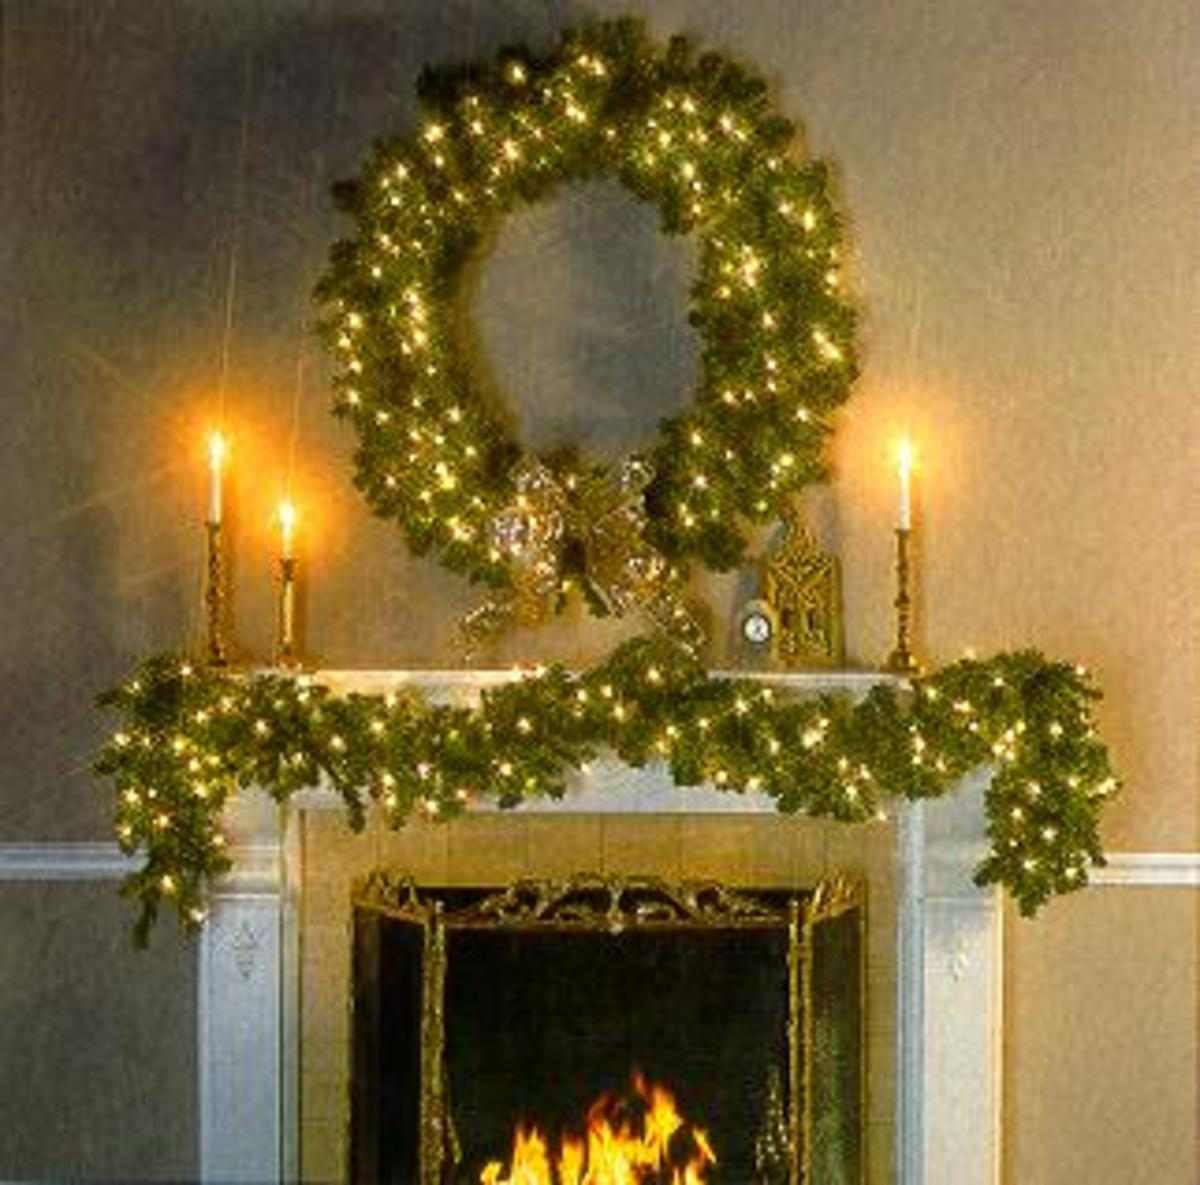 Archivoclinico: Christmas Fireplace Garland 2 Images